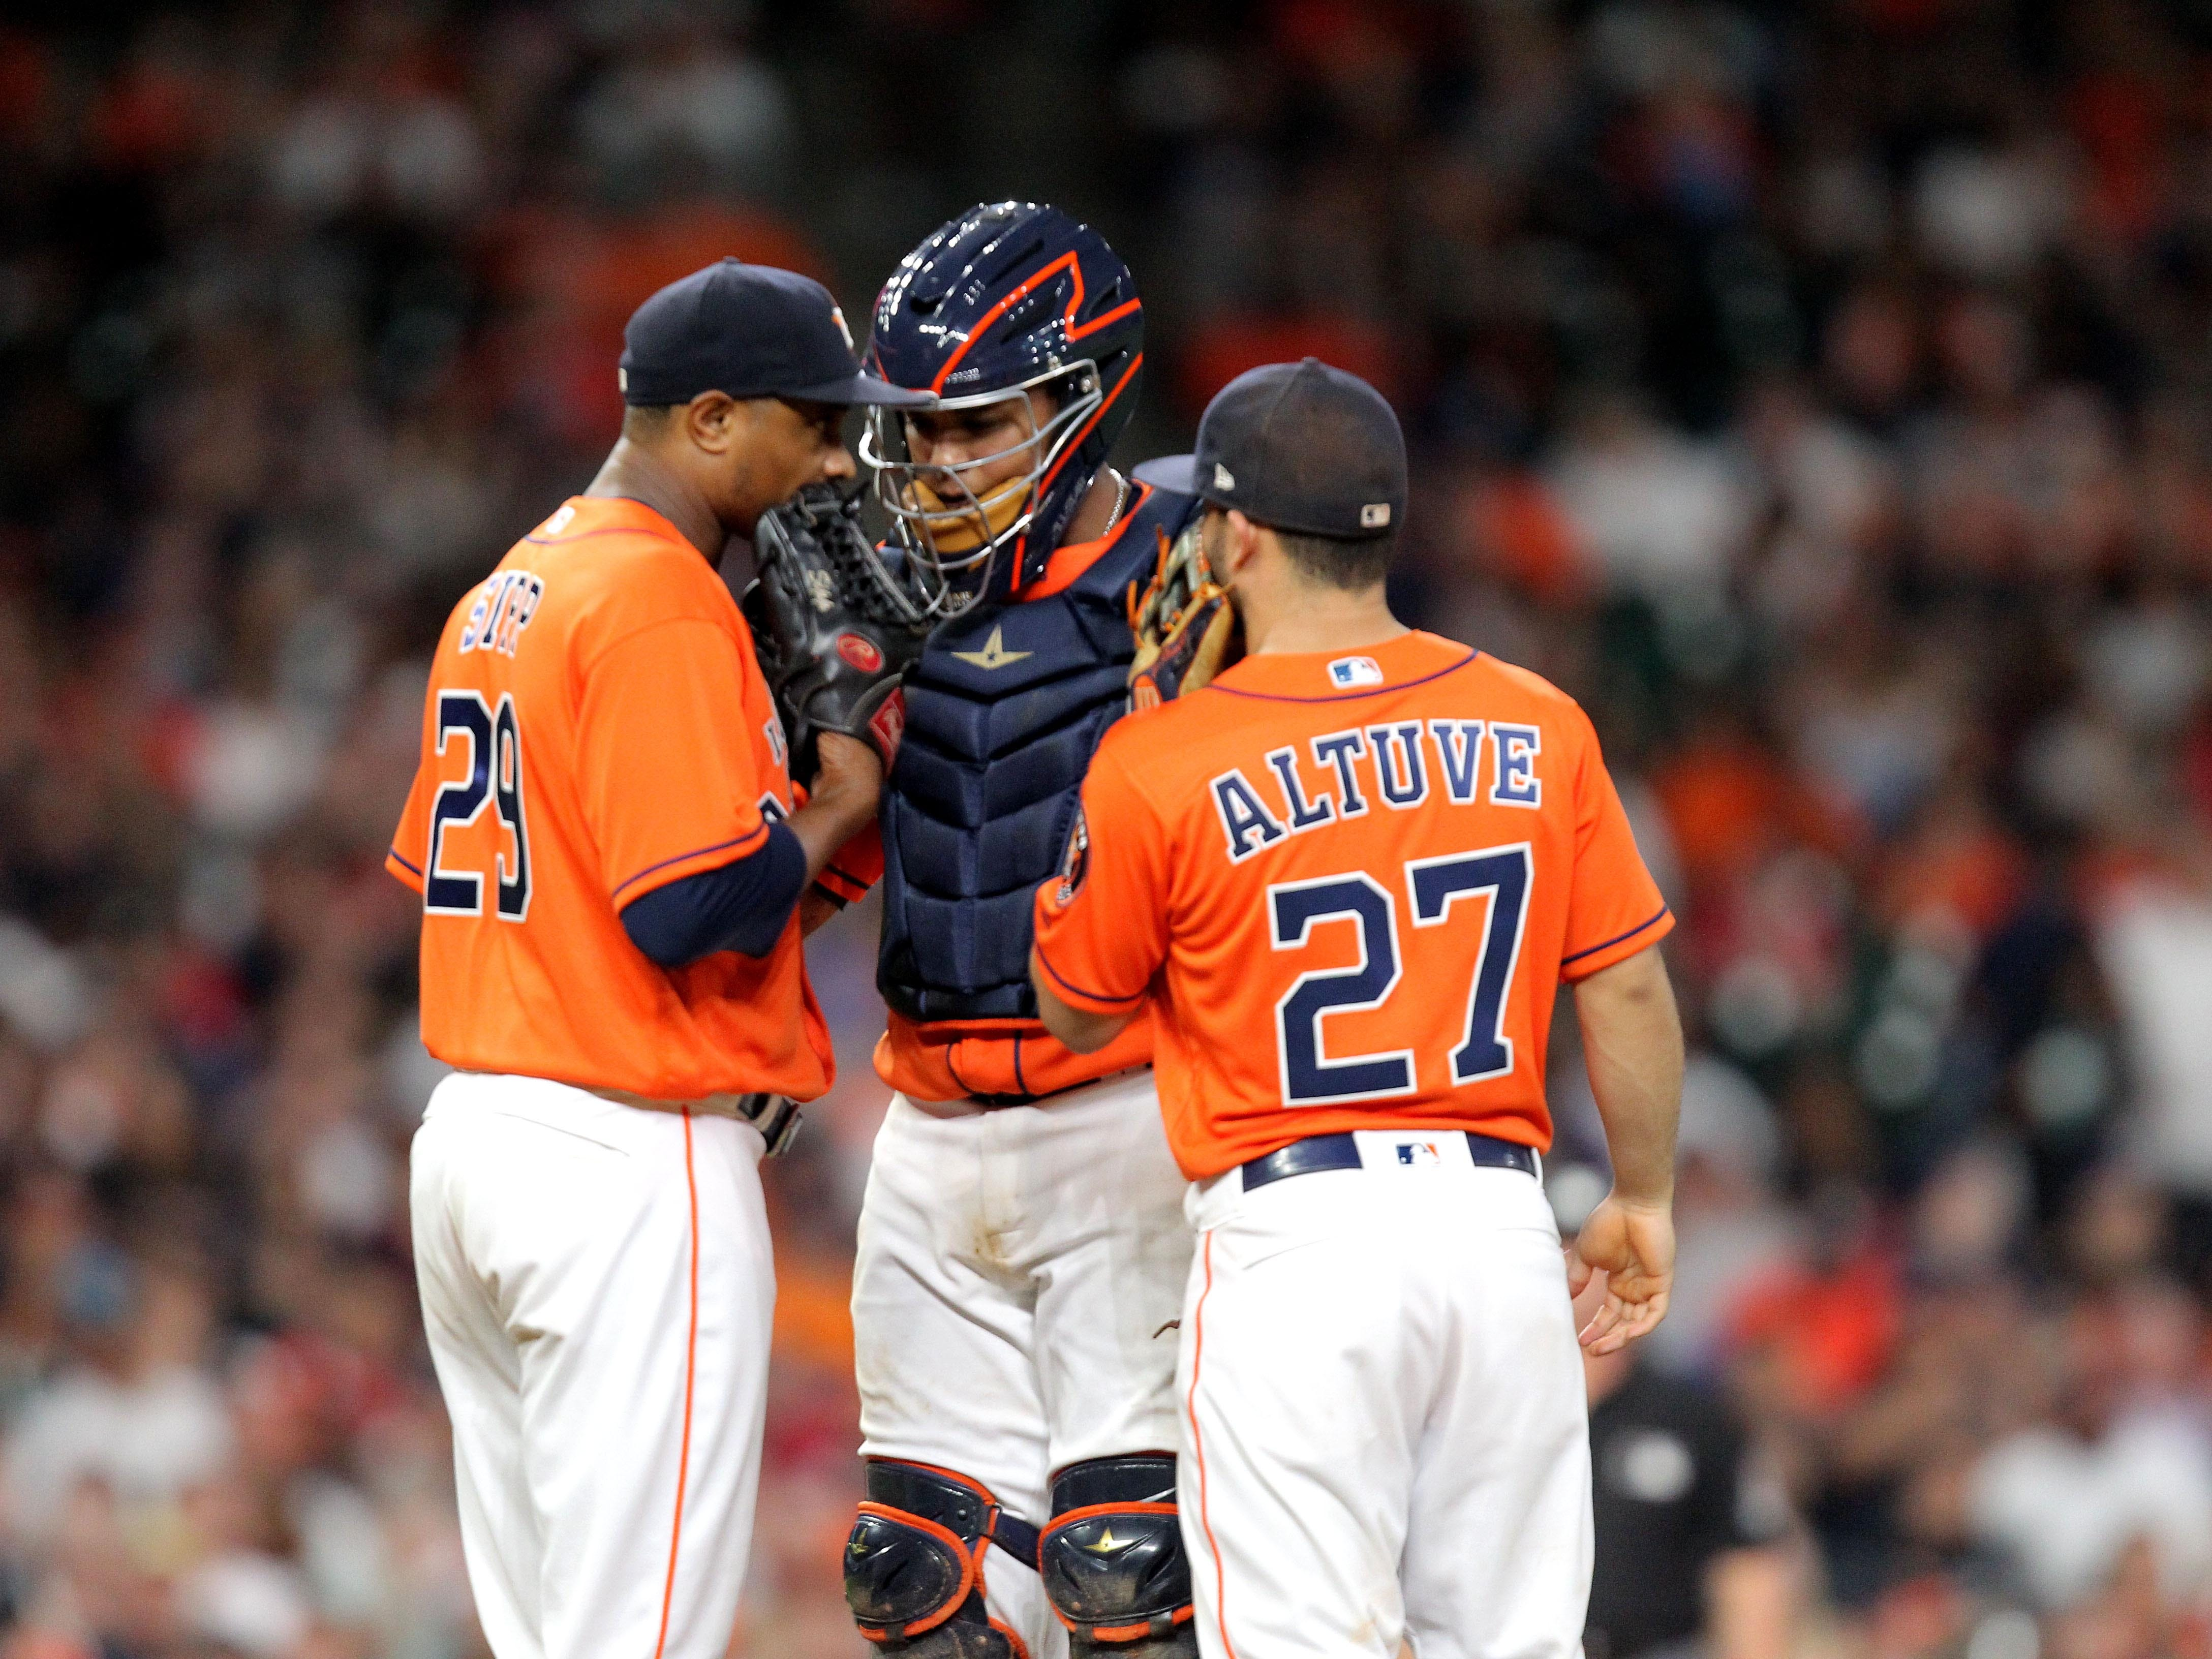 Sep 14, 2018: Houston Astros relief pitcher Tony Sipp (29, left) and Houston Astros second baseman Jose Altuve (27, right) meet with Houston Astros catcher Martin Maldonado (15, center) at the pitcher's mound during the seventh inning against the Arizona Diamondbacks at Minute Maid Park.